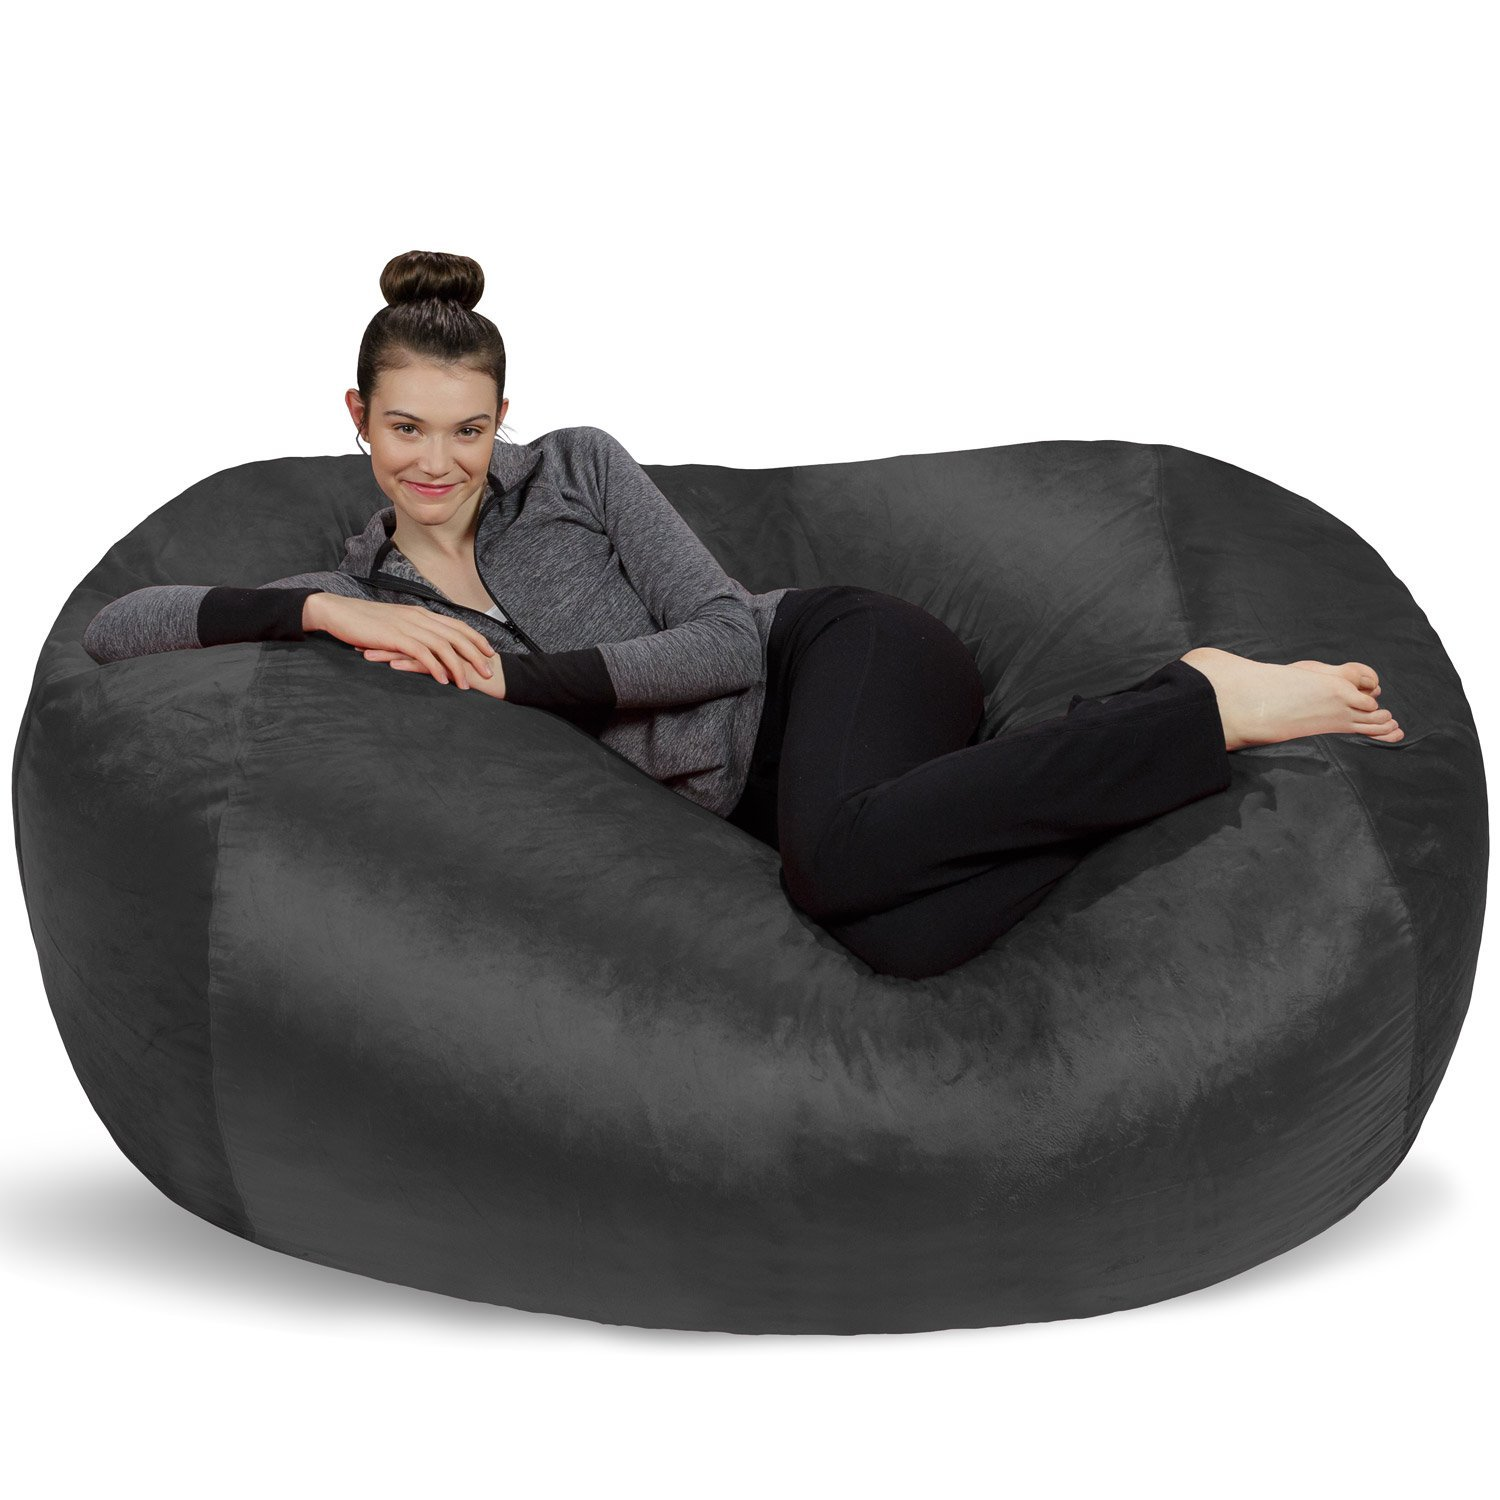 Charcoal Sofa Sack - Plush Bean Bag Sofas with Super Soft Microsuede Cover - XL Memory Foam Stuffed Lounger Chairs for Kids, Adults, Couples - Jumbo Bean Bag Chair Furniture - Chocolate 6'